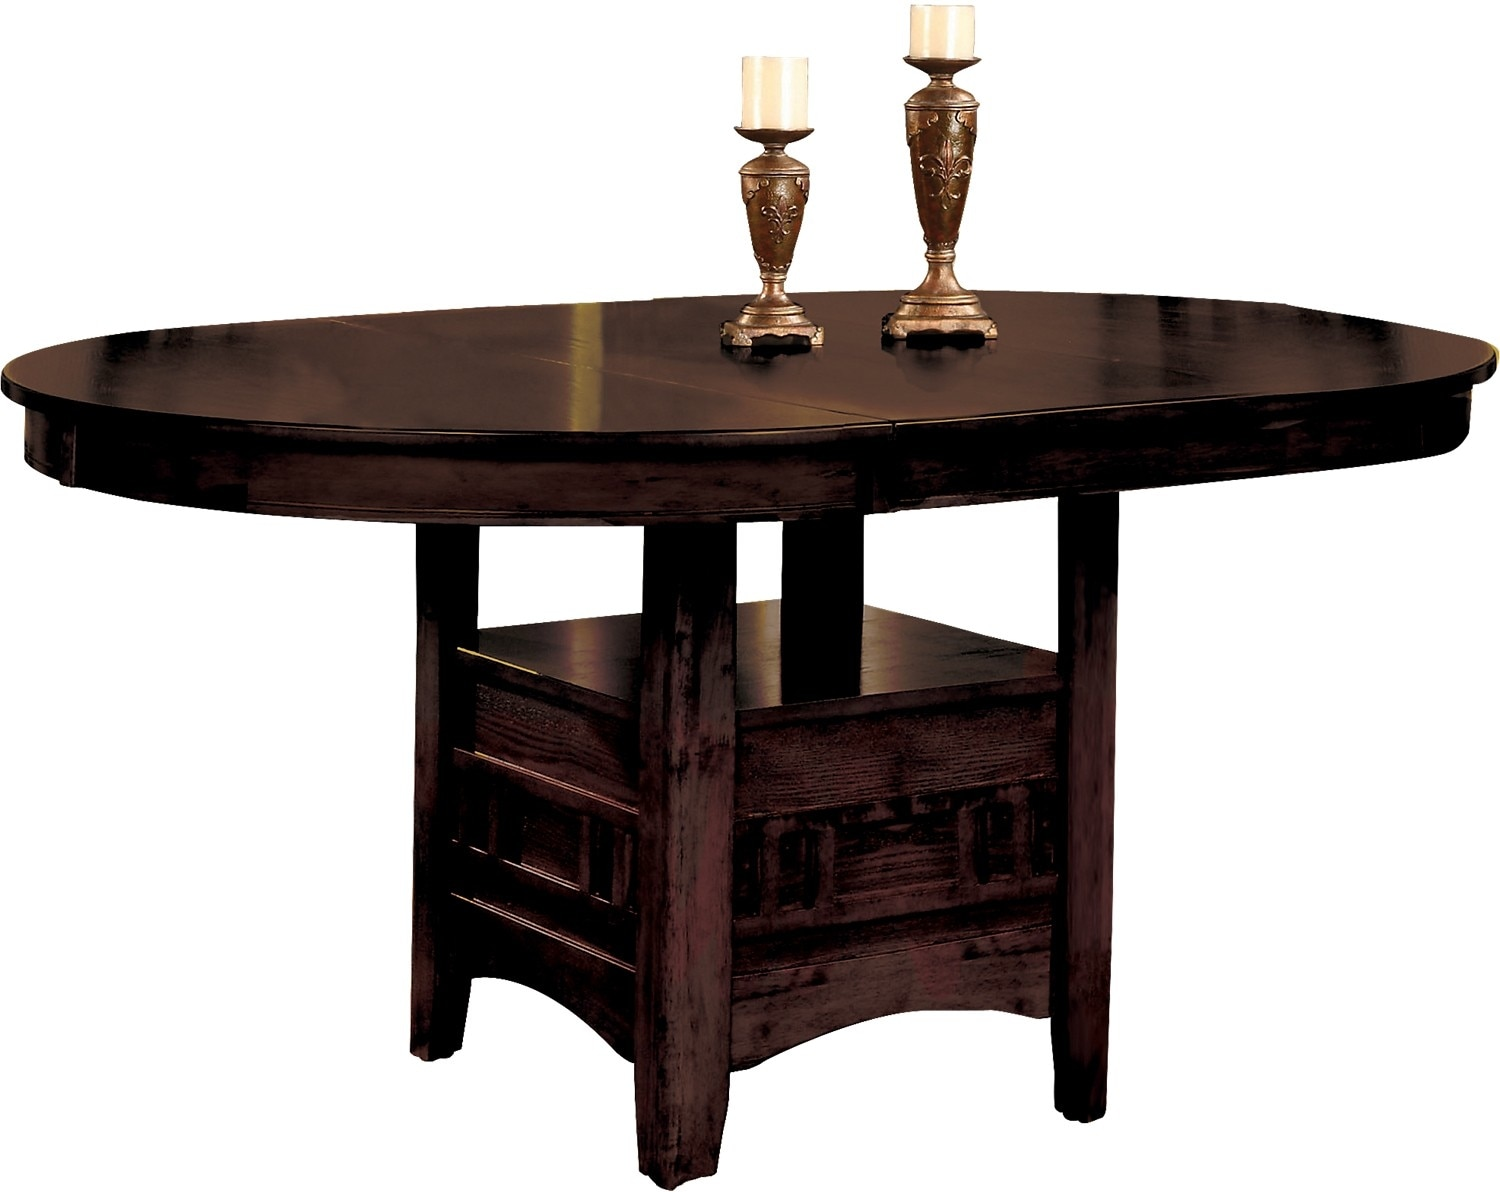 Dining Room Furniture - Dalton Chocolate Dining Table